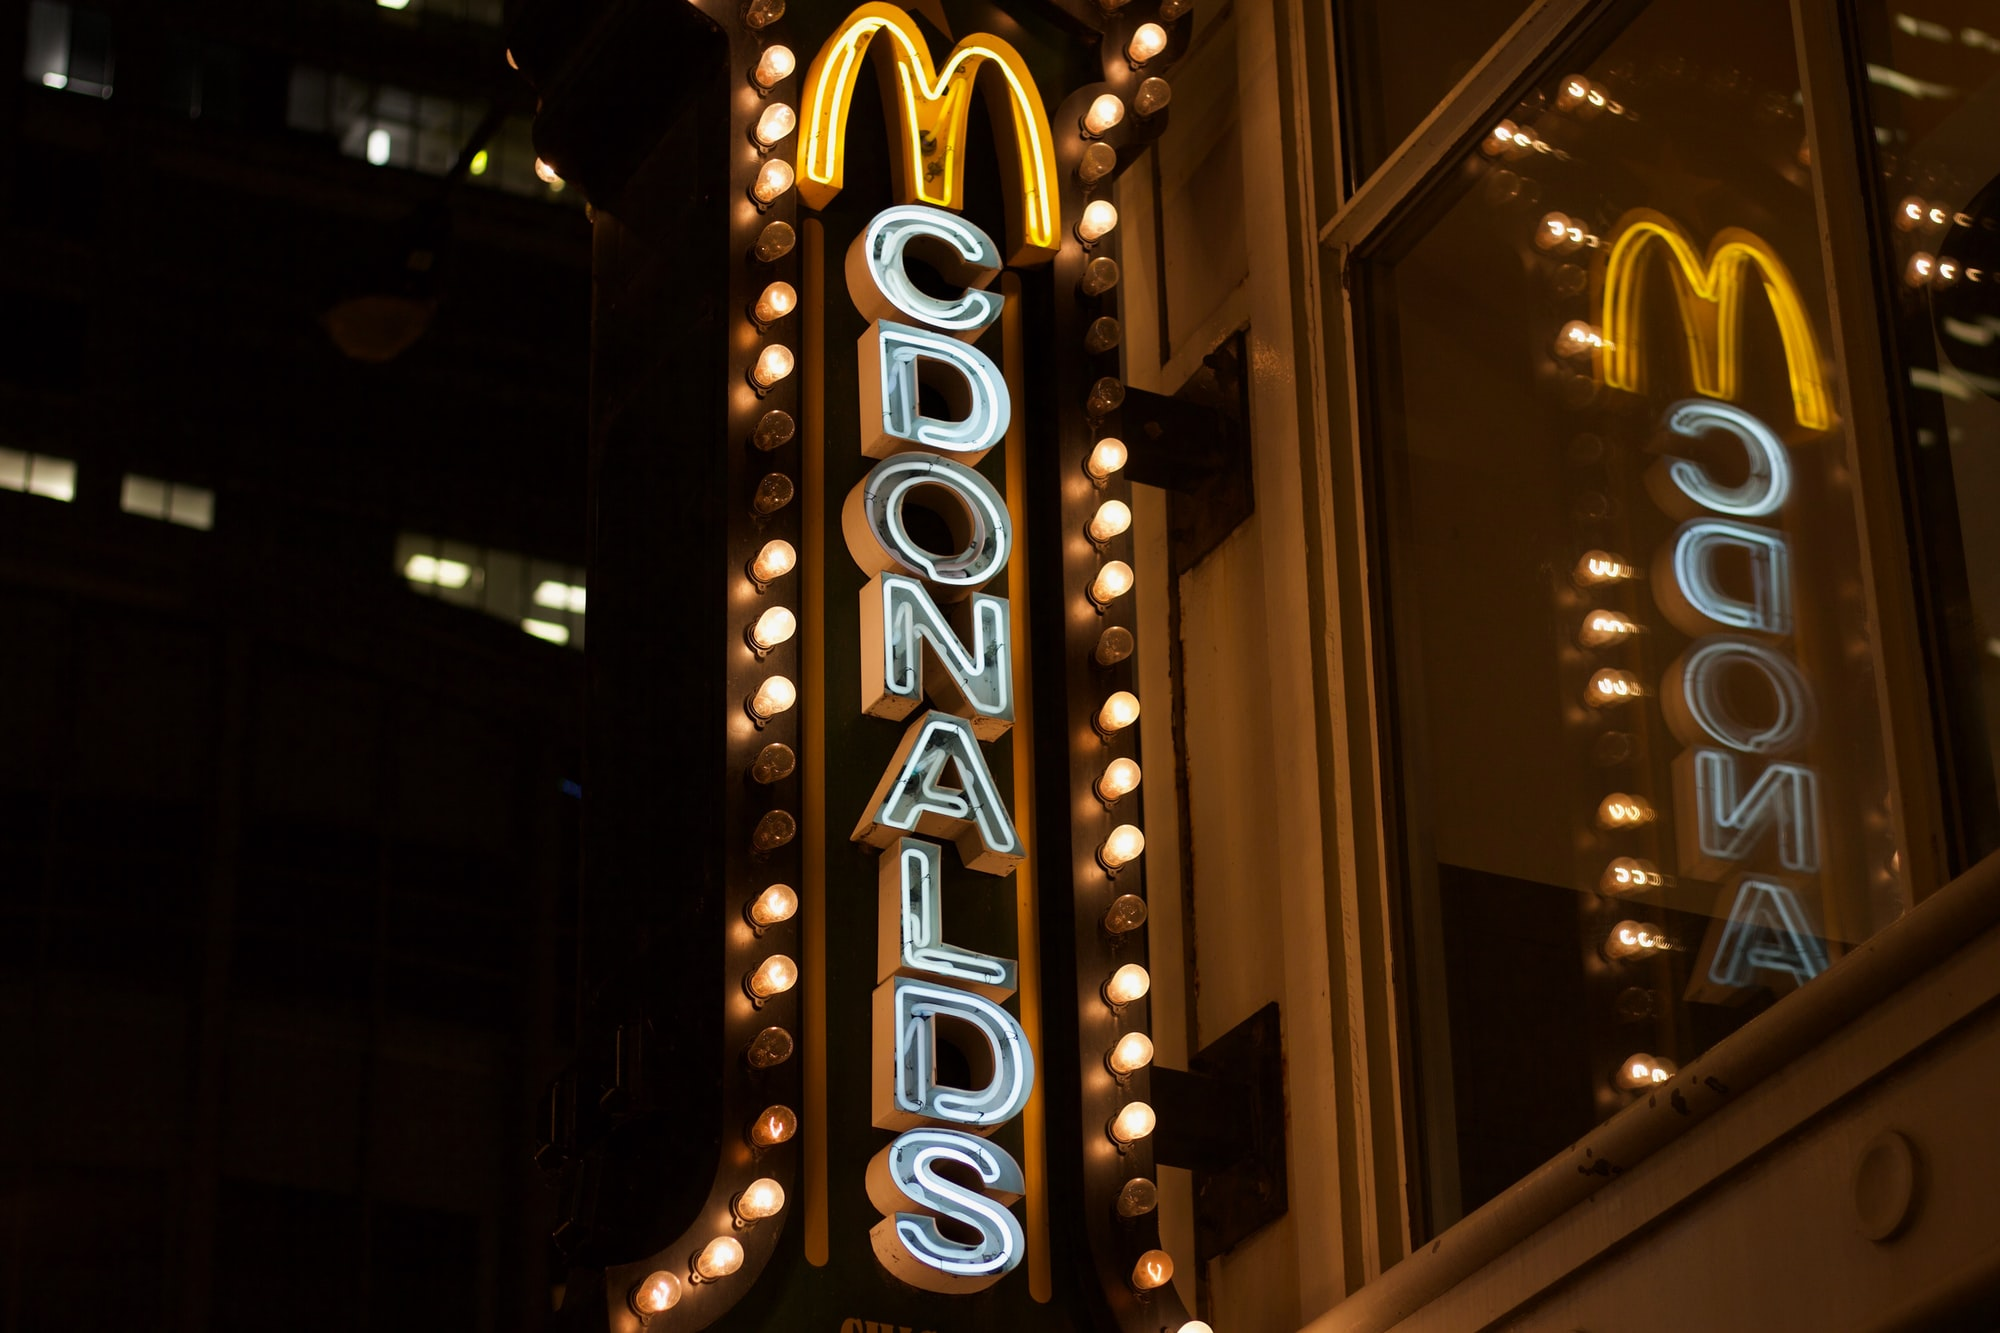 Why did McDonald's acquire an Israeli company for $300M, only to sell part of it?